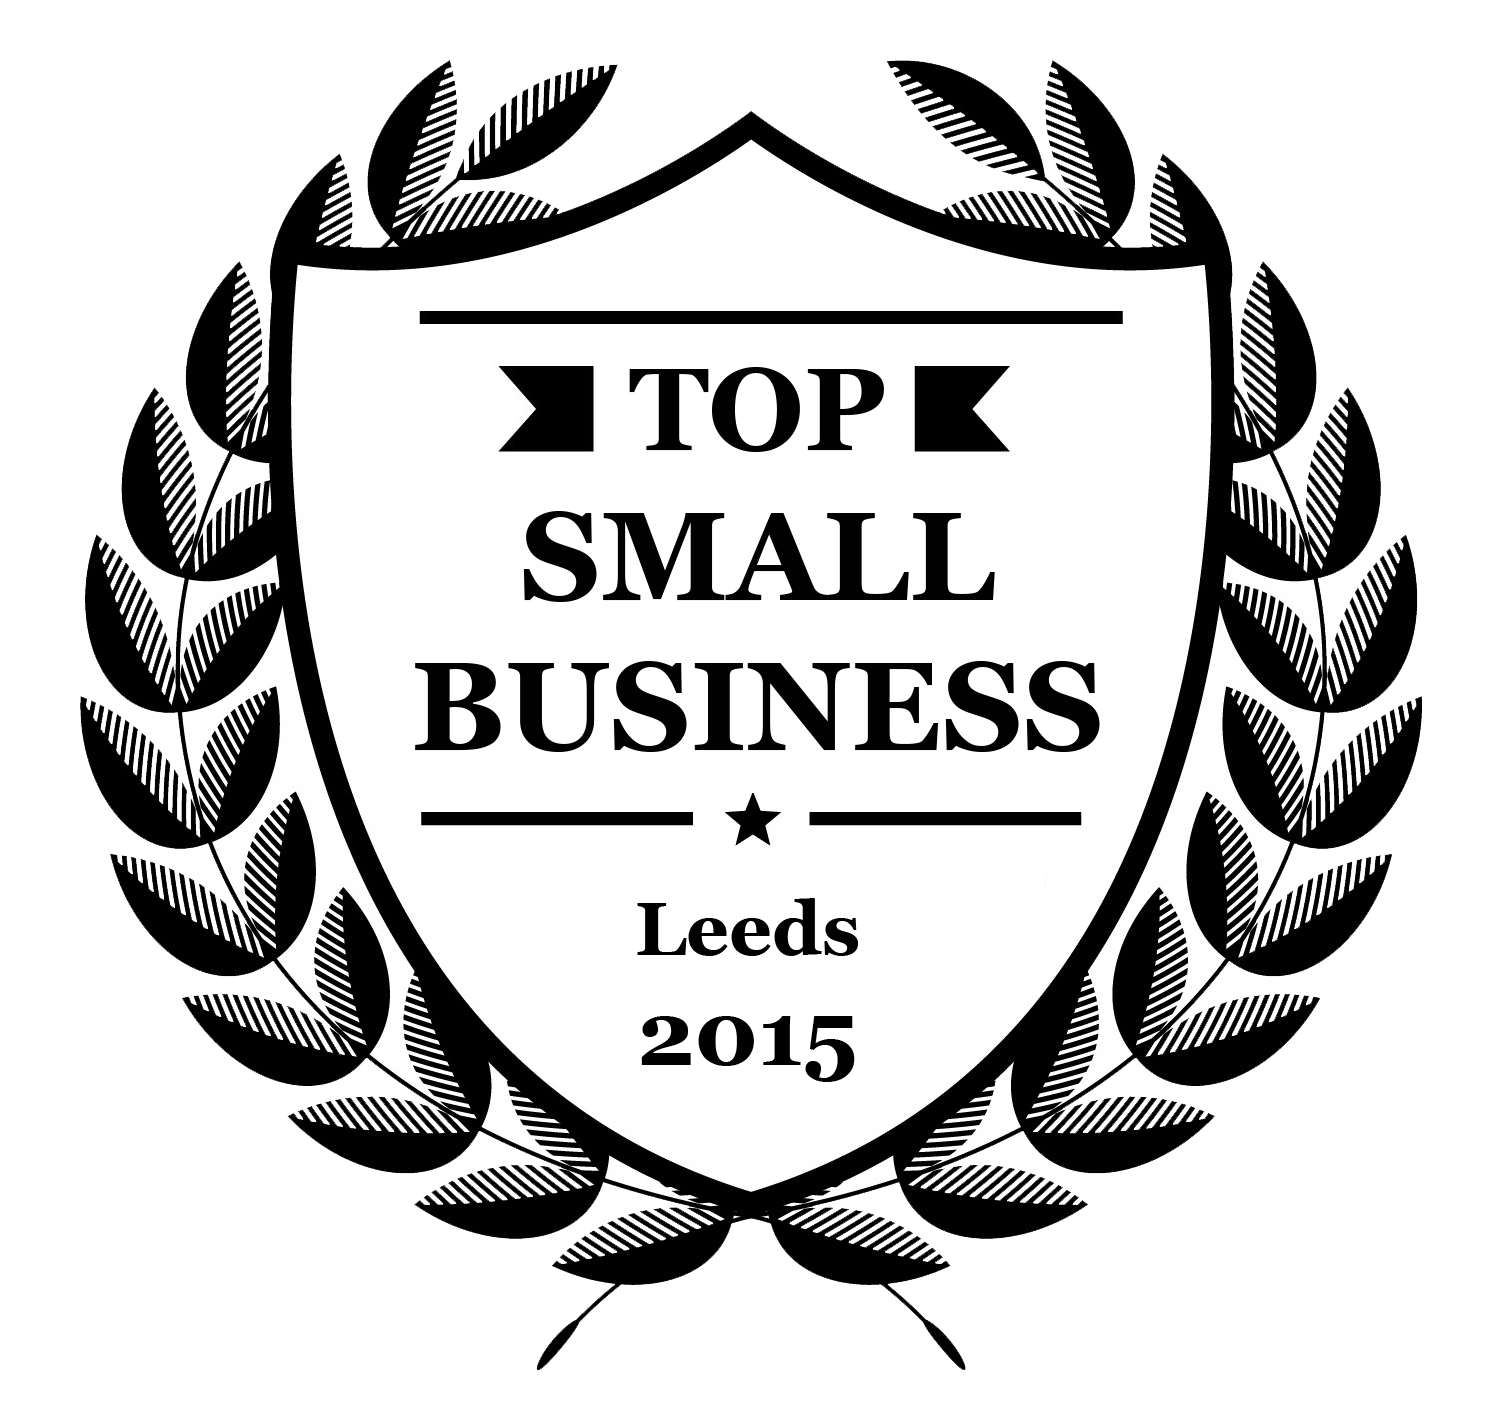 Sands Wealth Management - Top small business award 2015